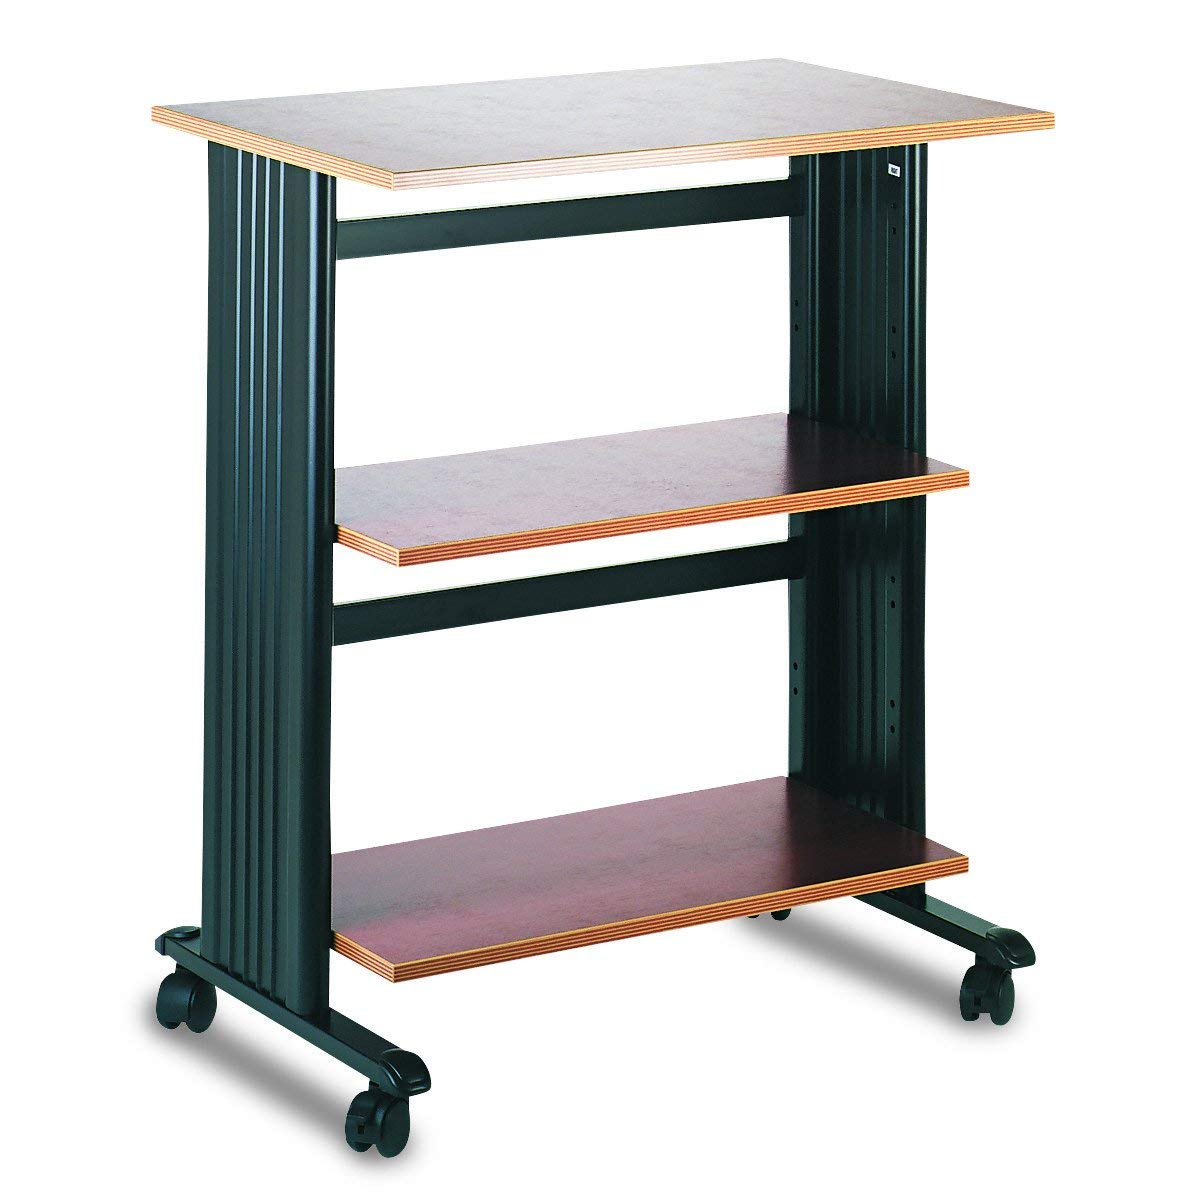 Safco Products Muv Adjustable Printer Stand 1881CY, Cherry Top/Black Frame, Swivel Wheels, Two Adjustable Shelves